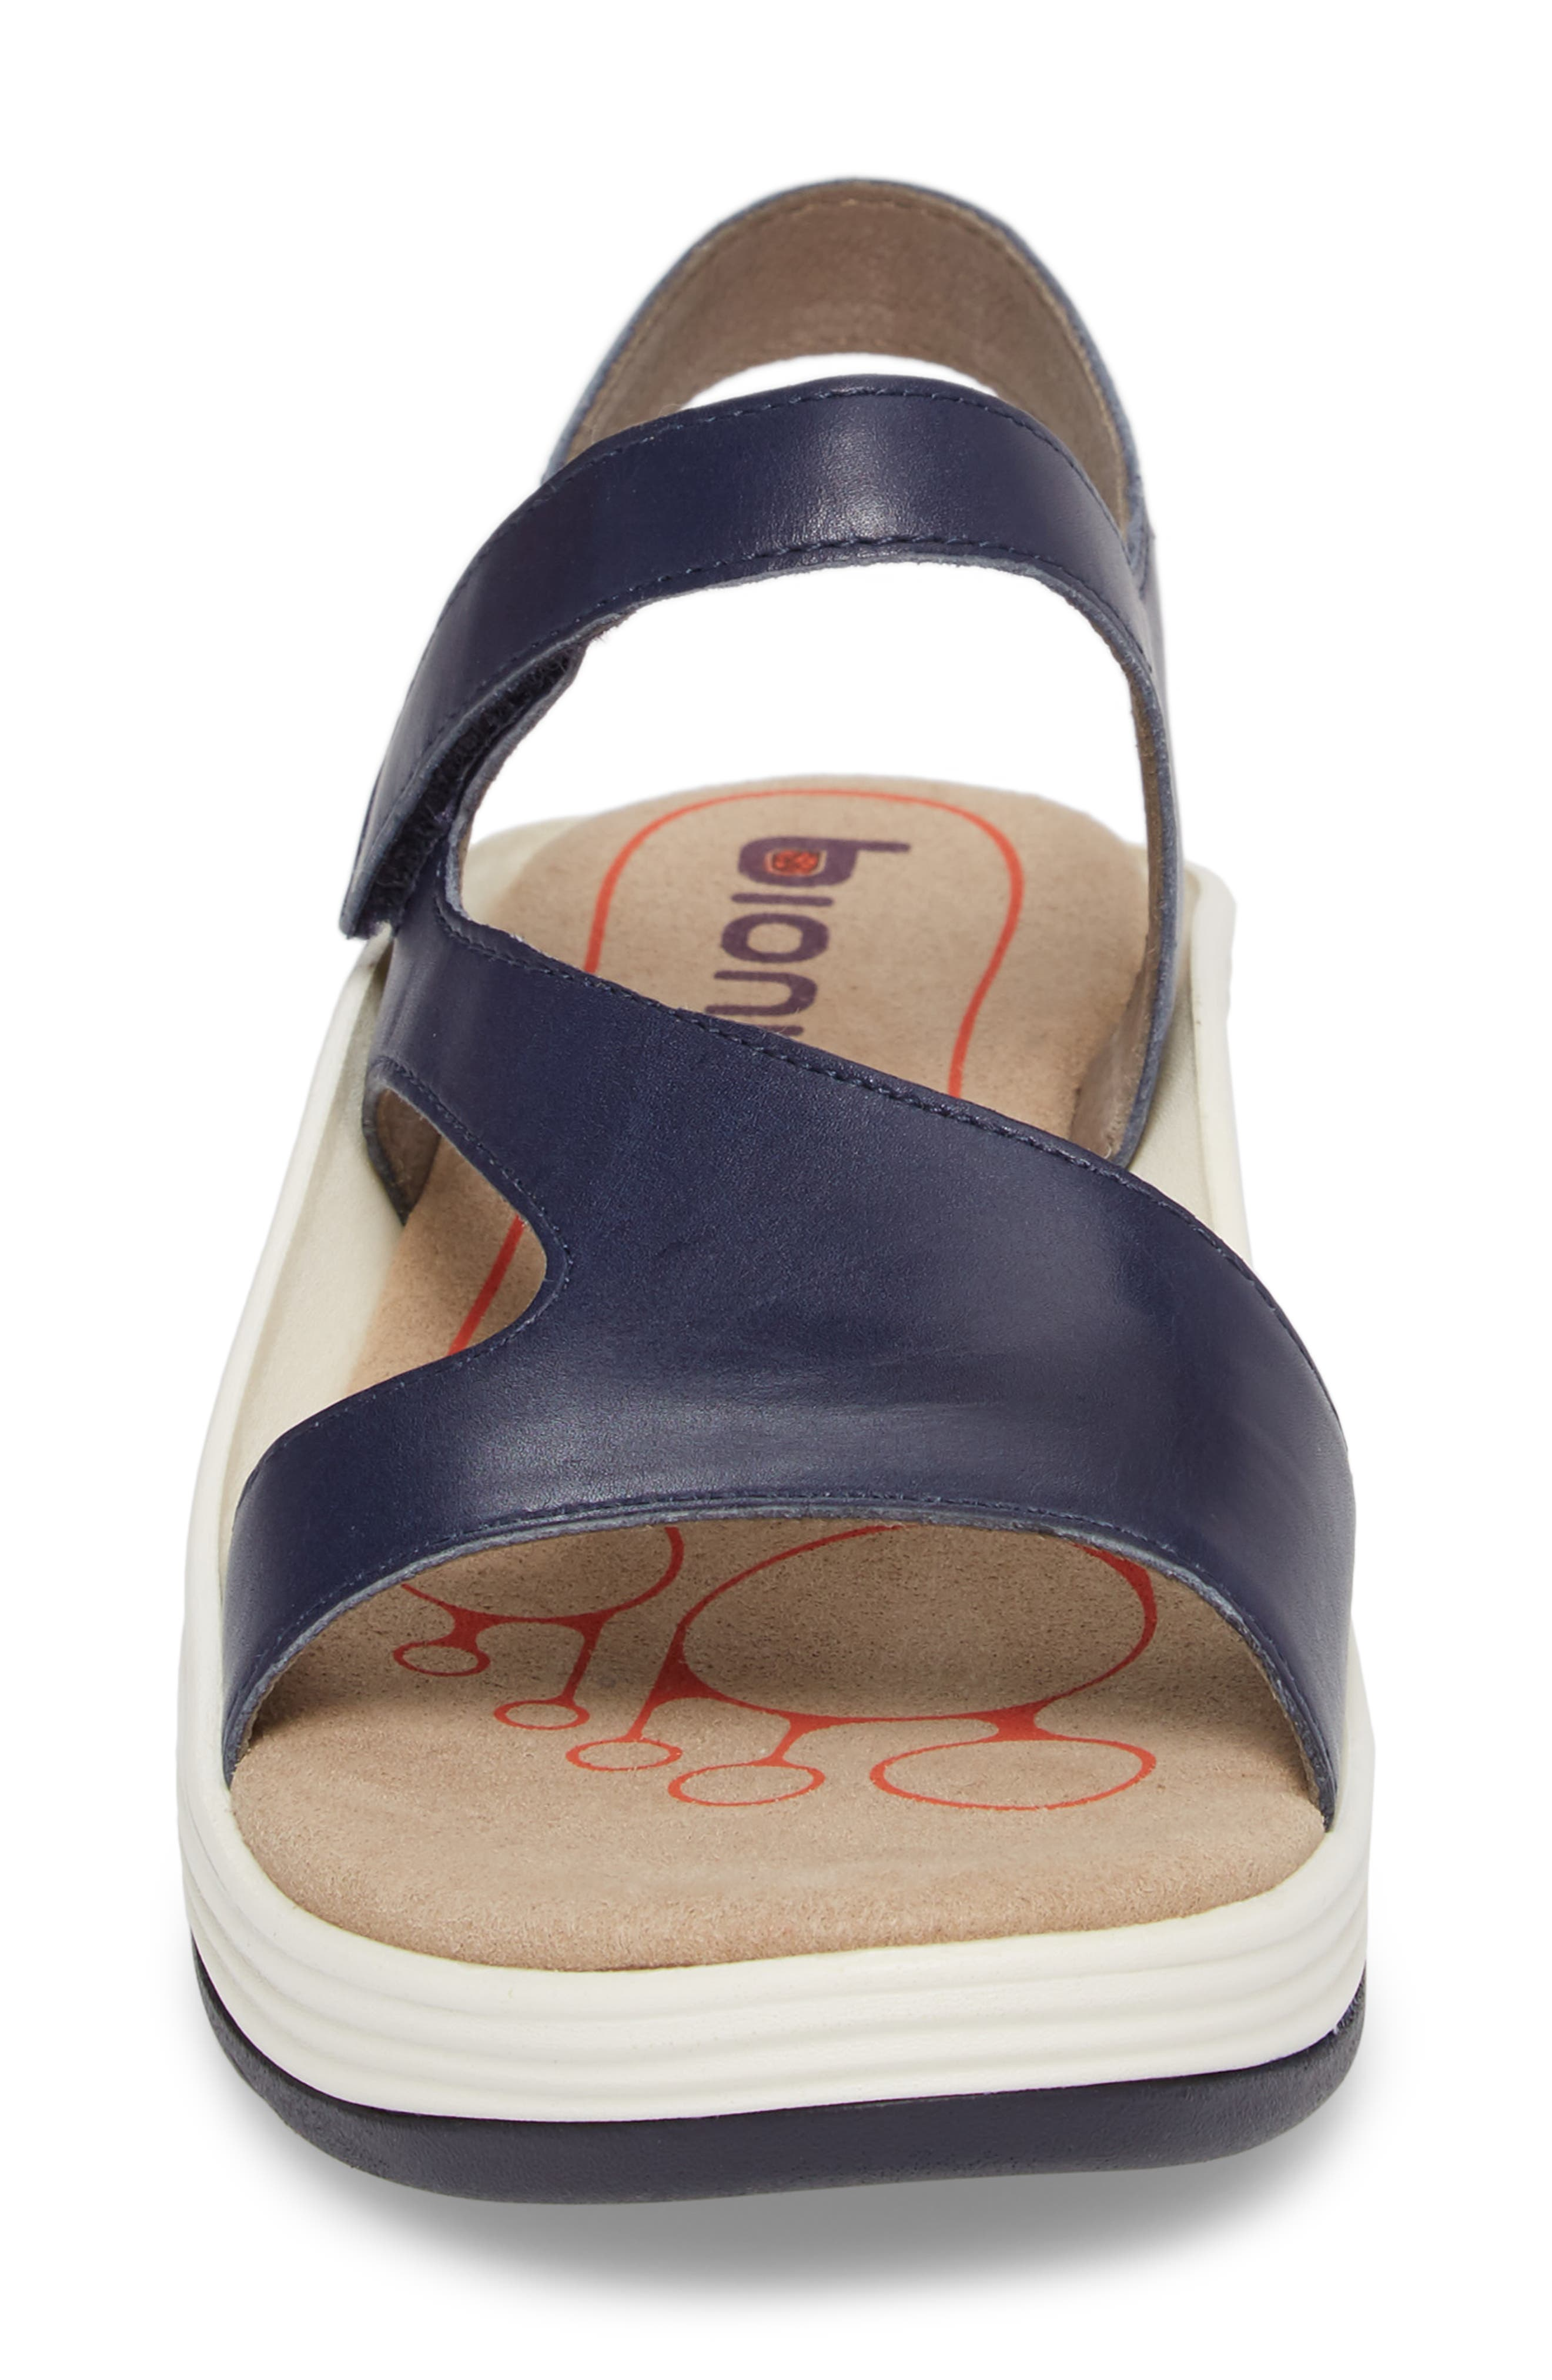 Cybele Platform Sandal,                             Alternate thumbnail 4, color,                             Peacoat Navy Leather